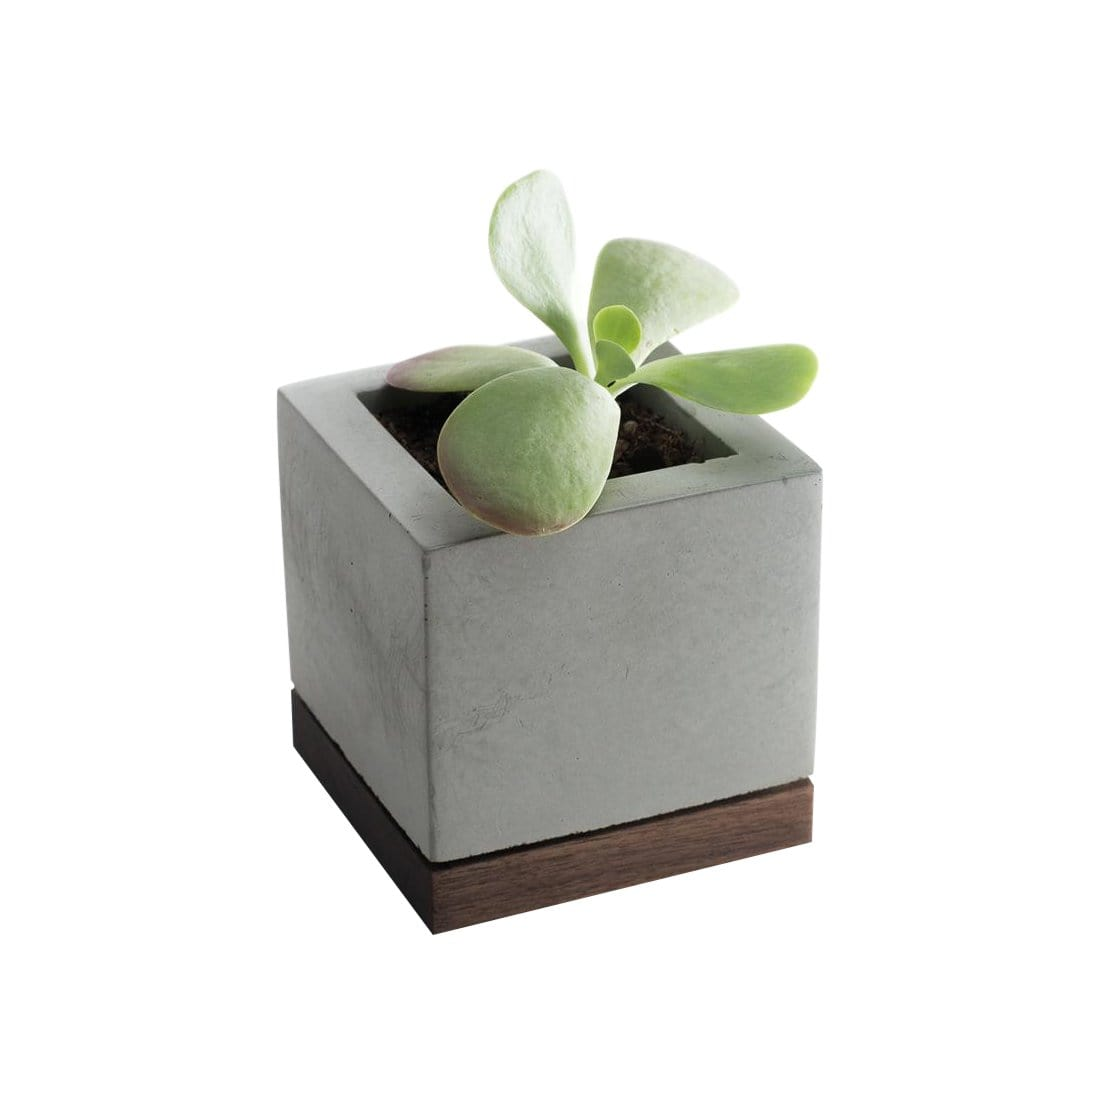 Concrete + Wood Planter